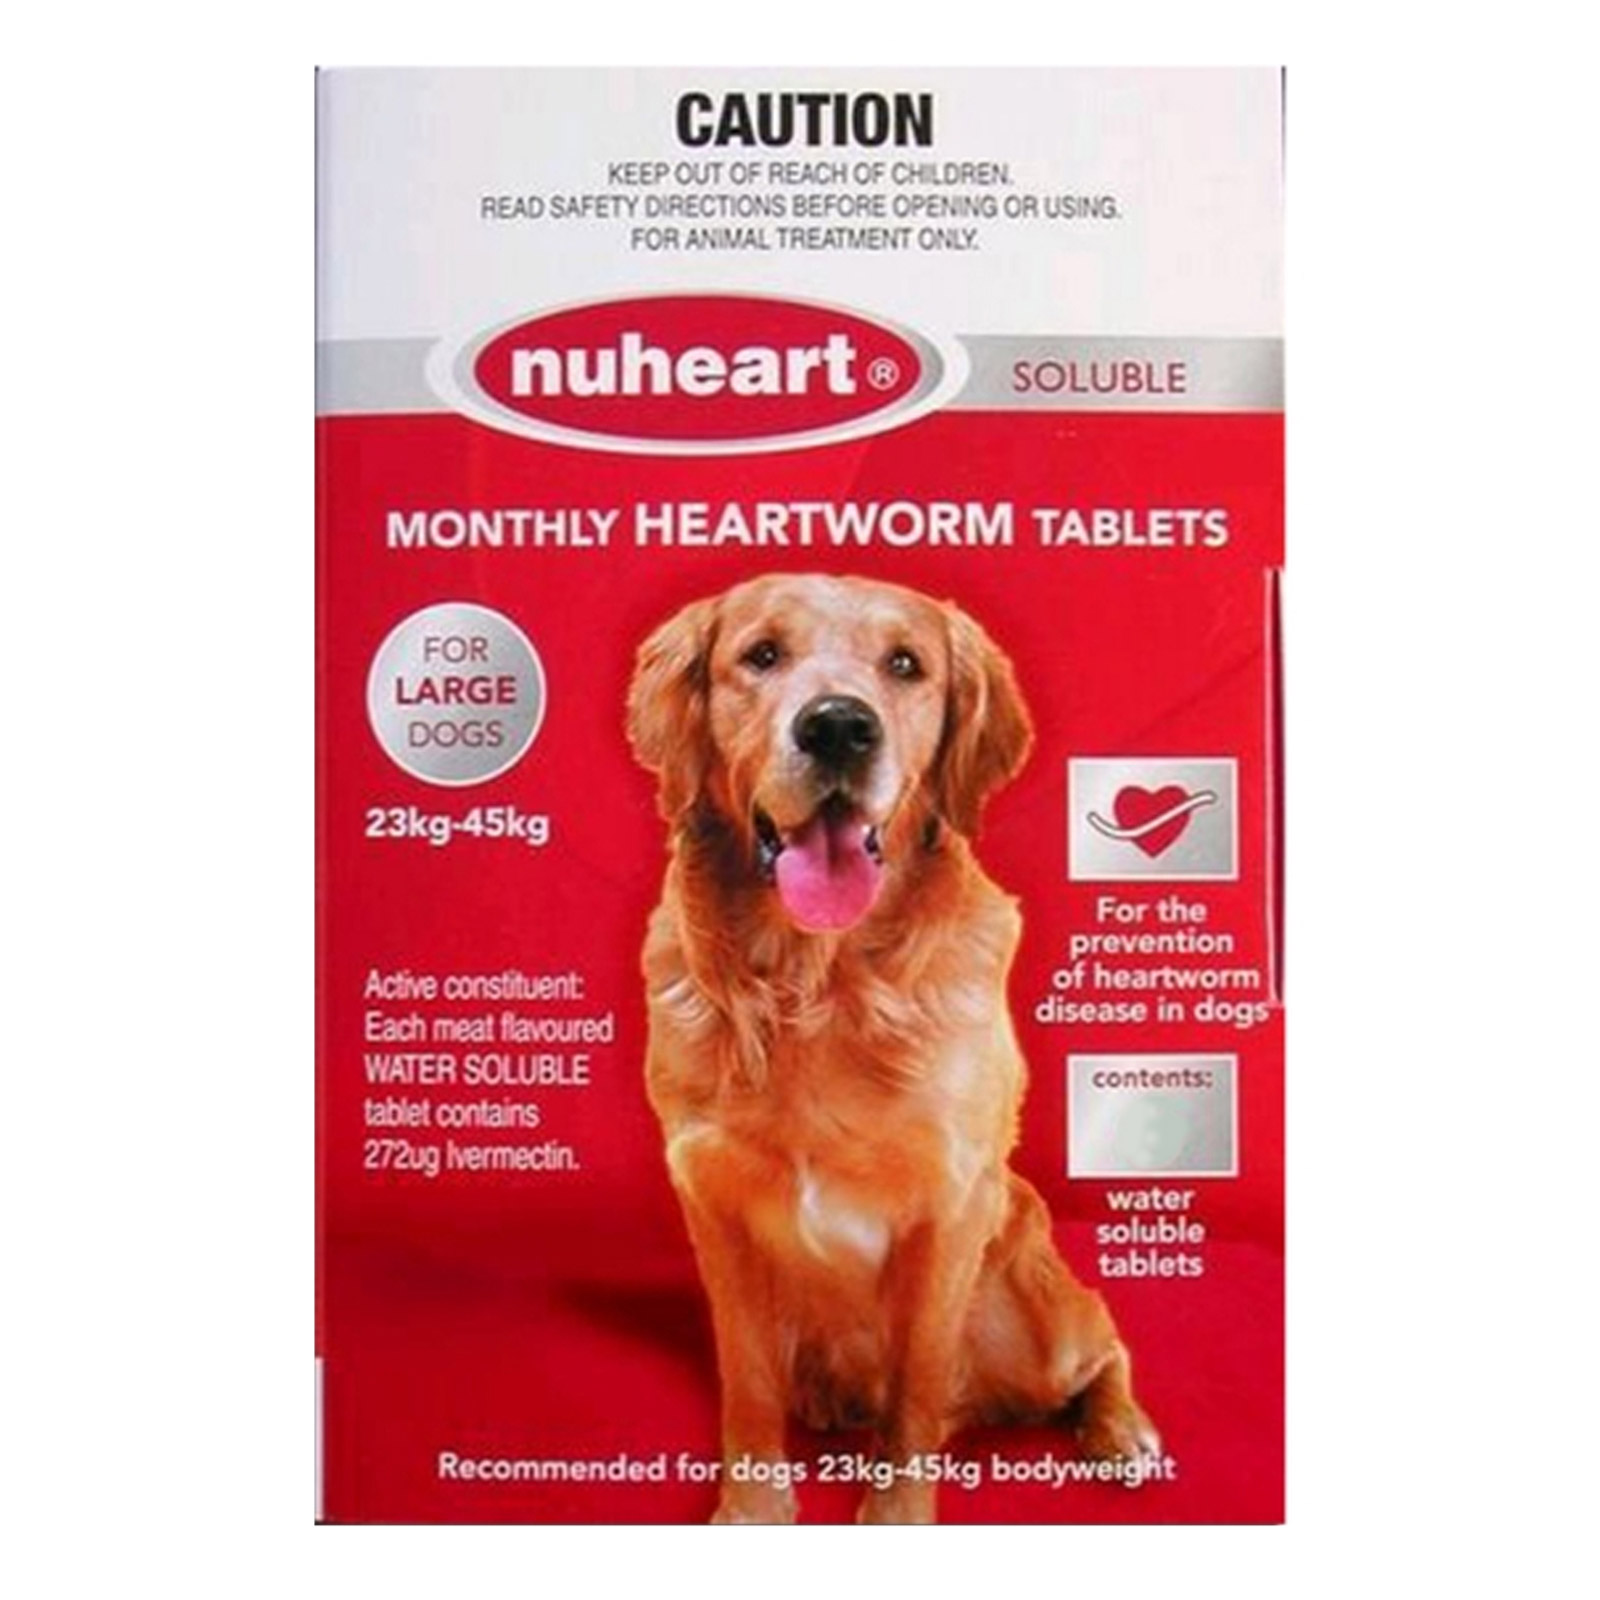 Generic Heartgard Tabs For Large Dogs - Nuheart 23 To 45Kg (Red)